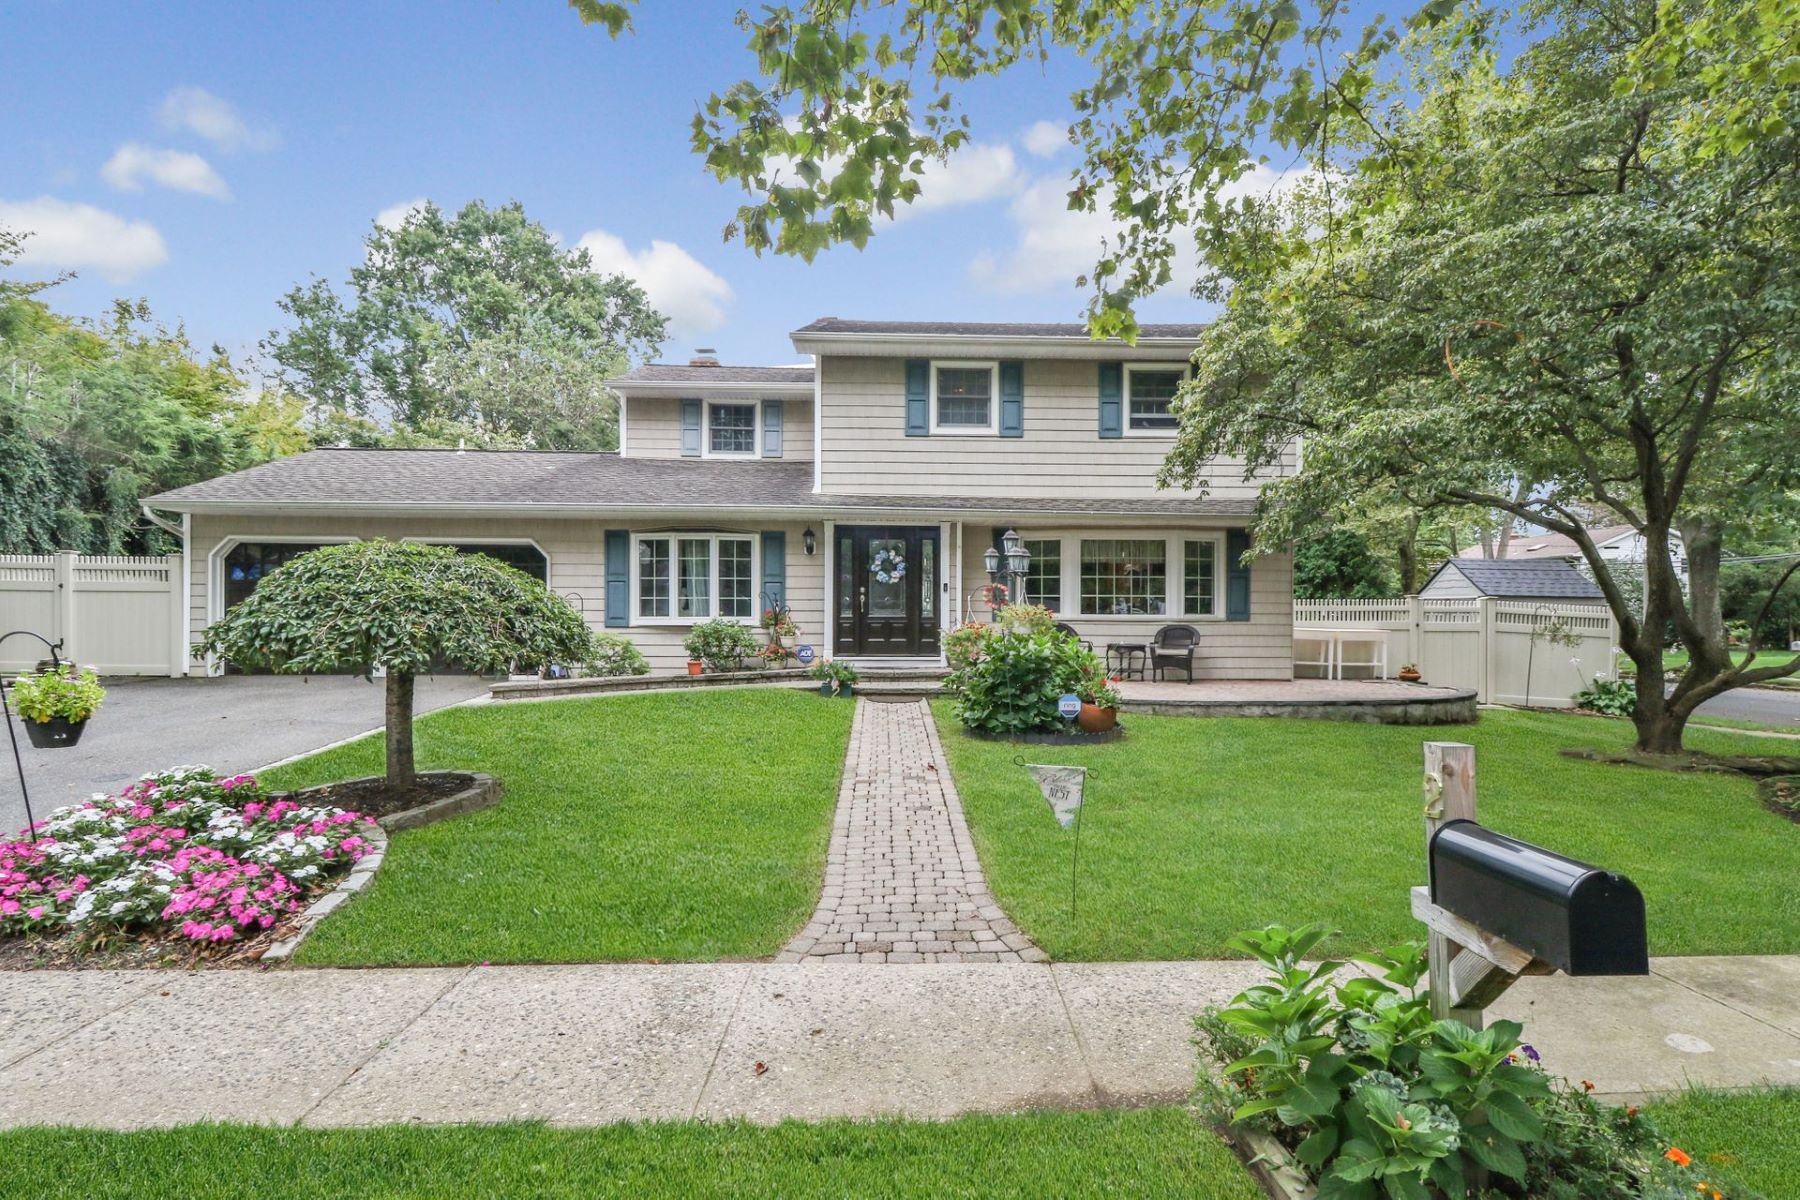 Single Family Homes for Active at Greenlawn 2 Frost Pond Rd Greenlawn, New York 11740 United States